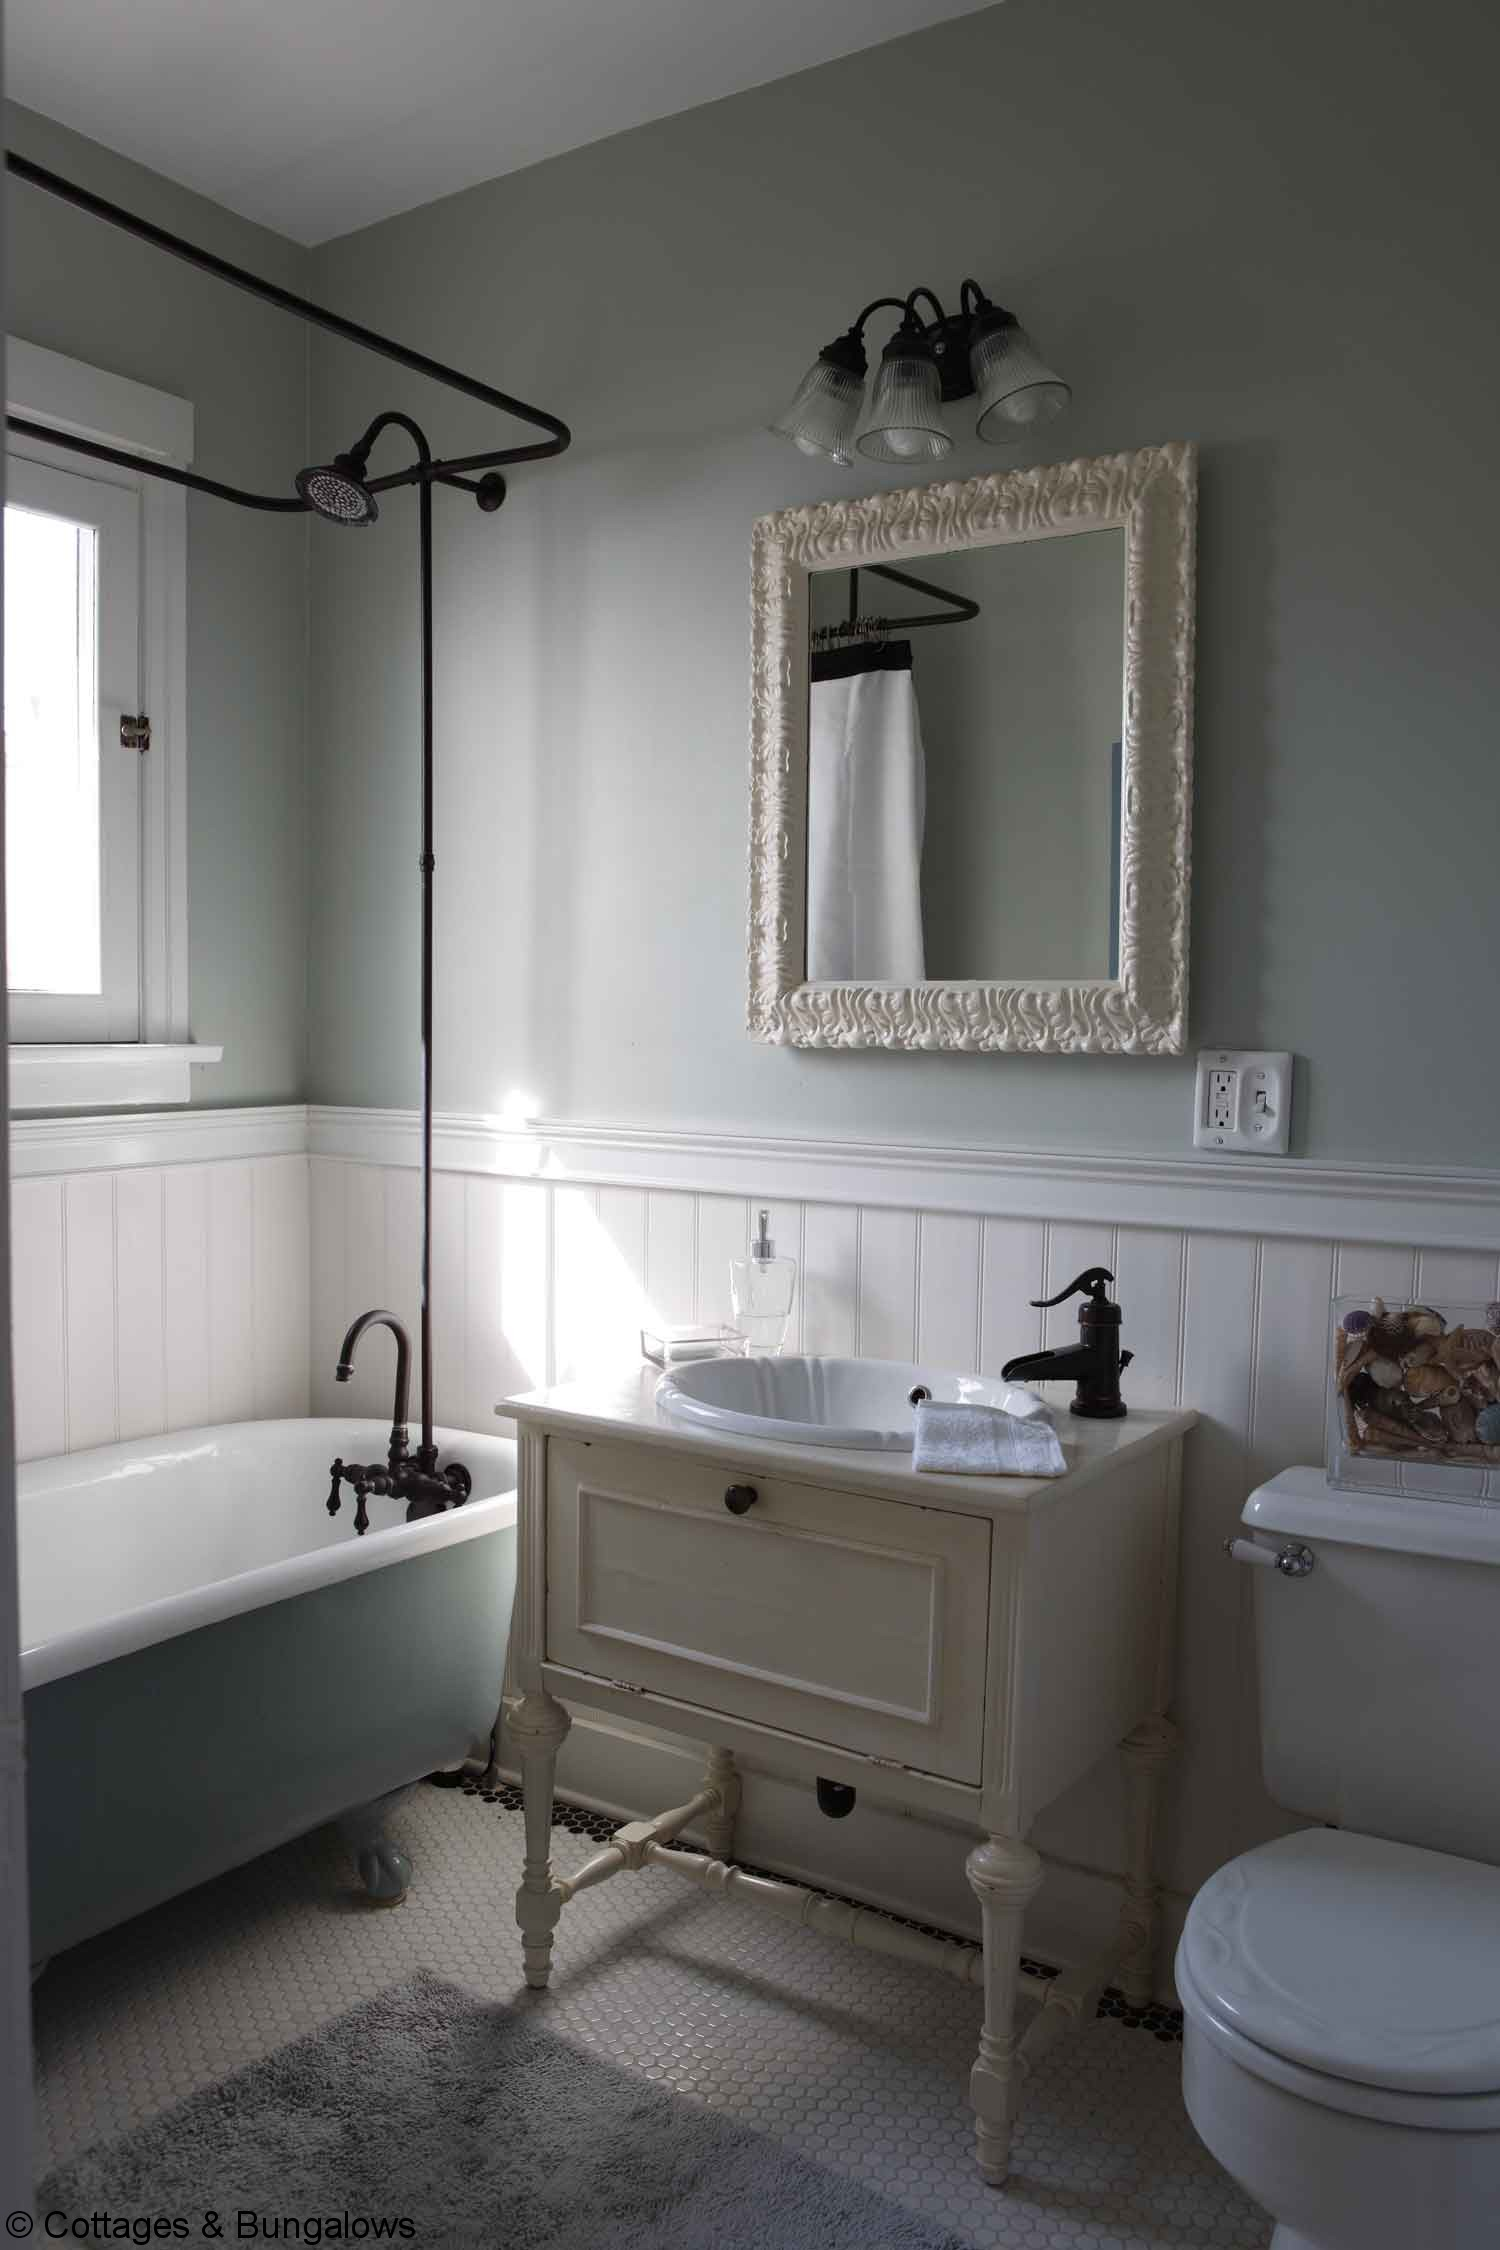 35 Great Pictures And Ideas Of Vintage Ceramic Bathroom